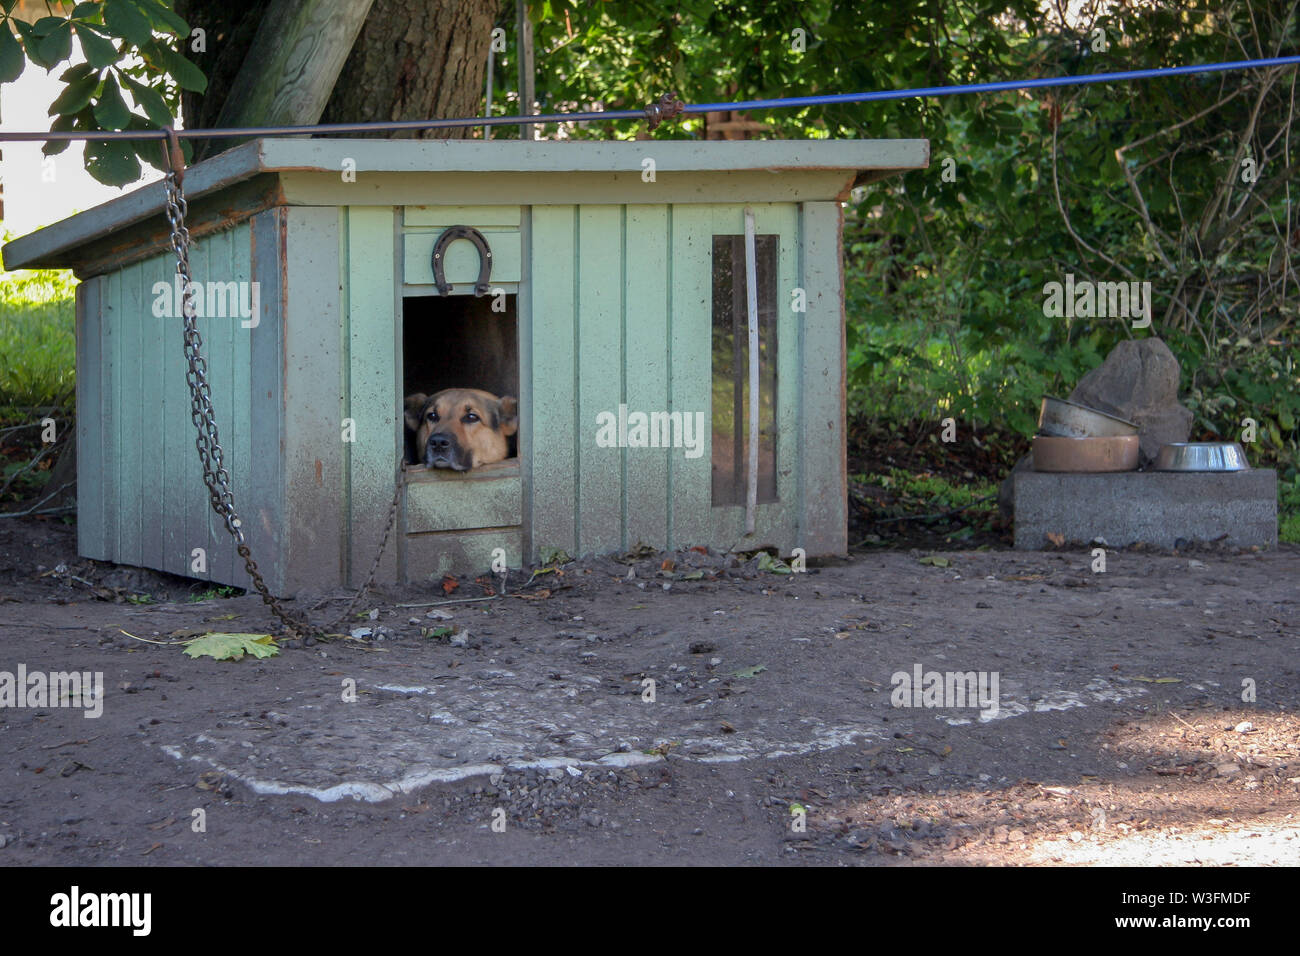 A sad shepherd dog sits in a booth on a chain and looks away. Horseshoe nailed on the booth. The booth is green and dirty. Nearby are bowls for food. - Stock Image